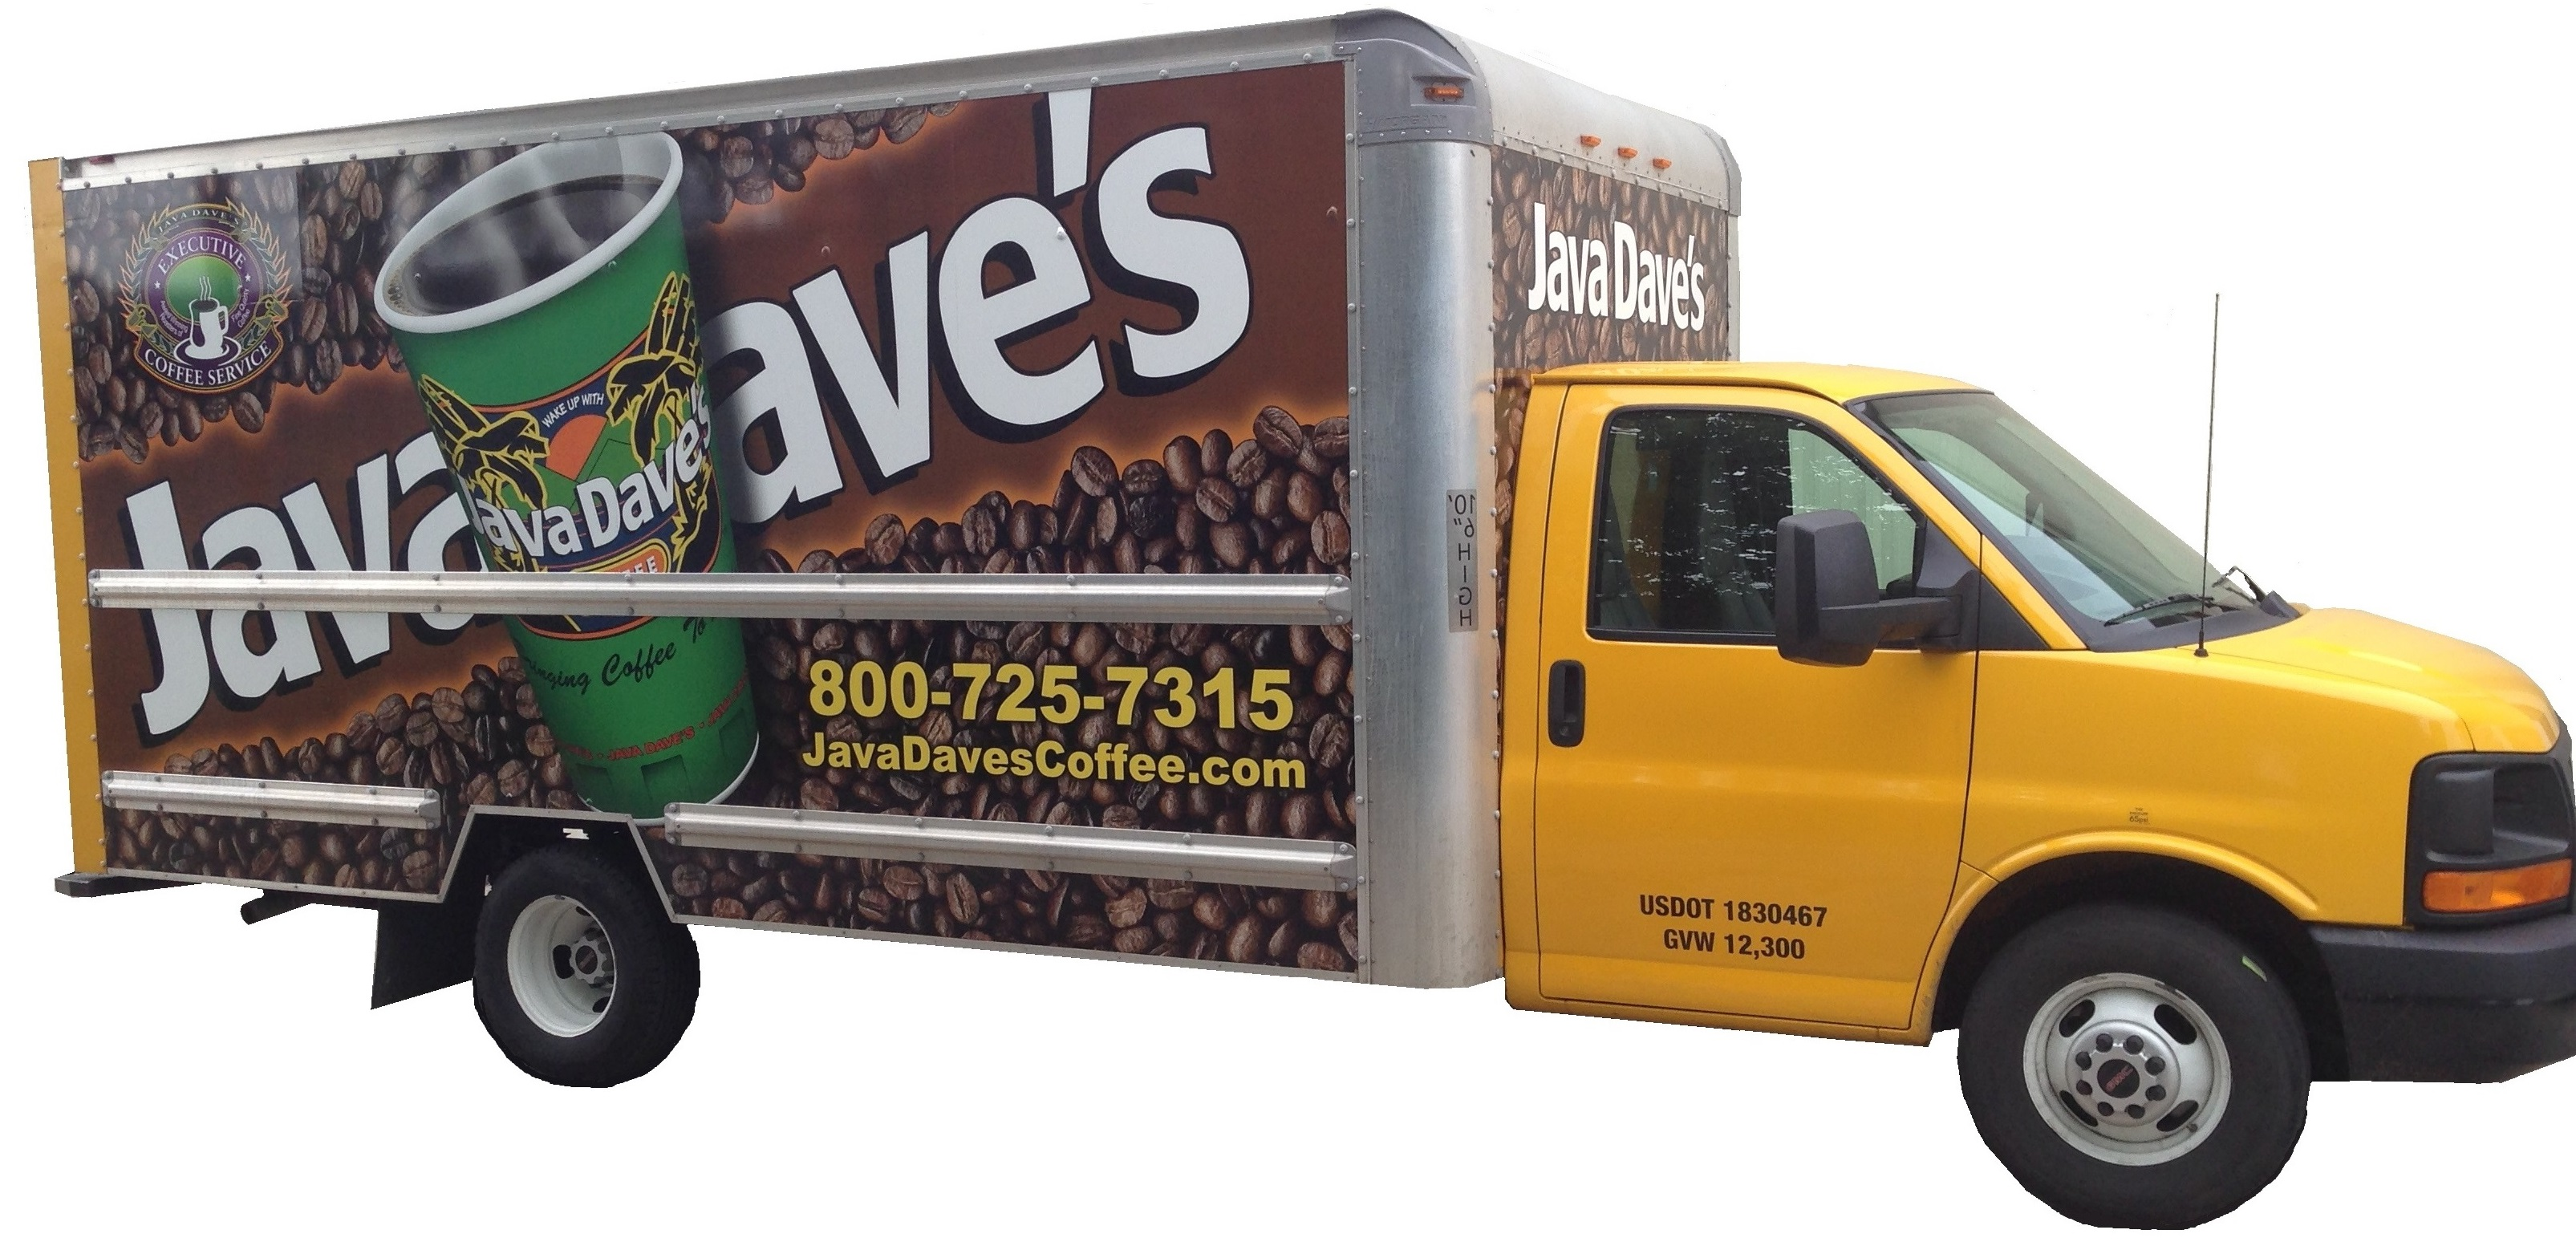 executive-coffee-service-truck-4.jpg